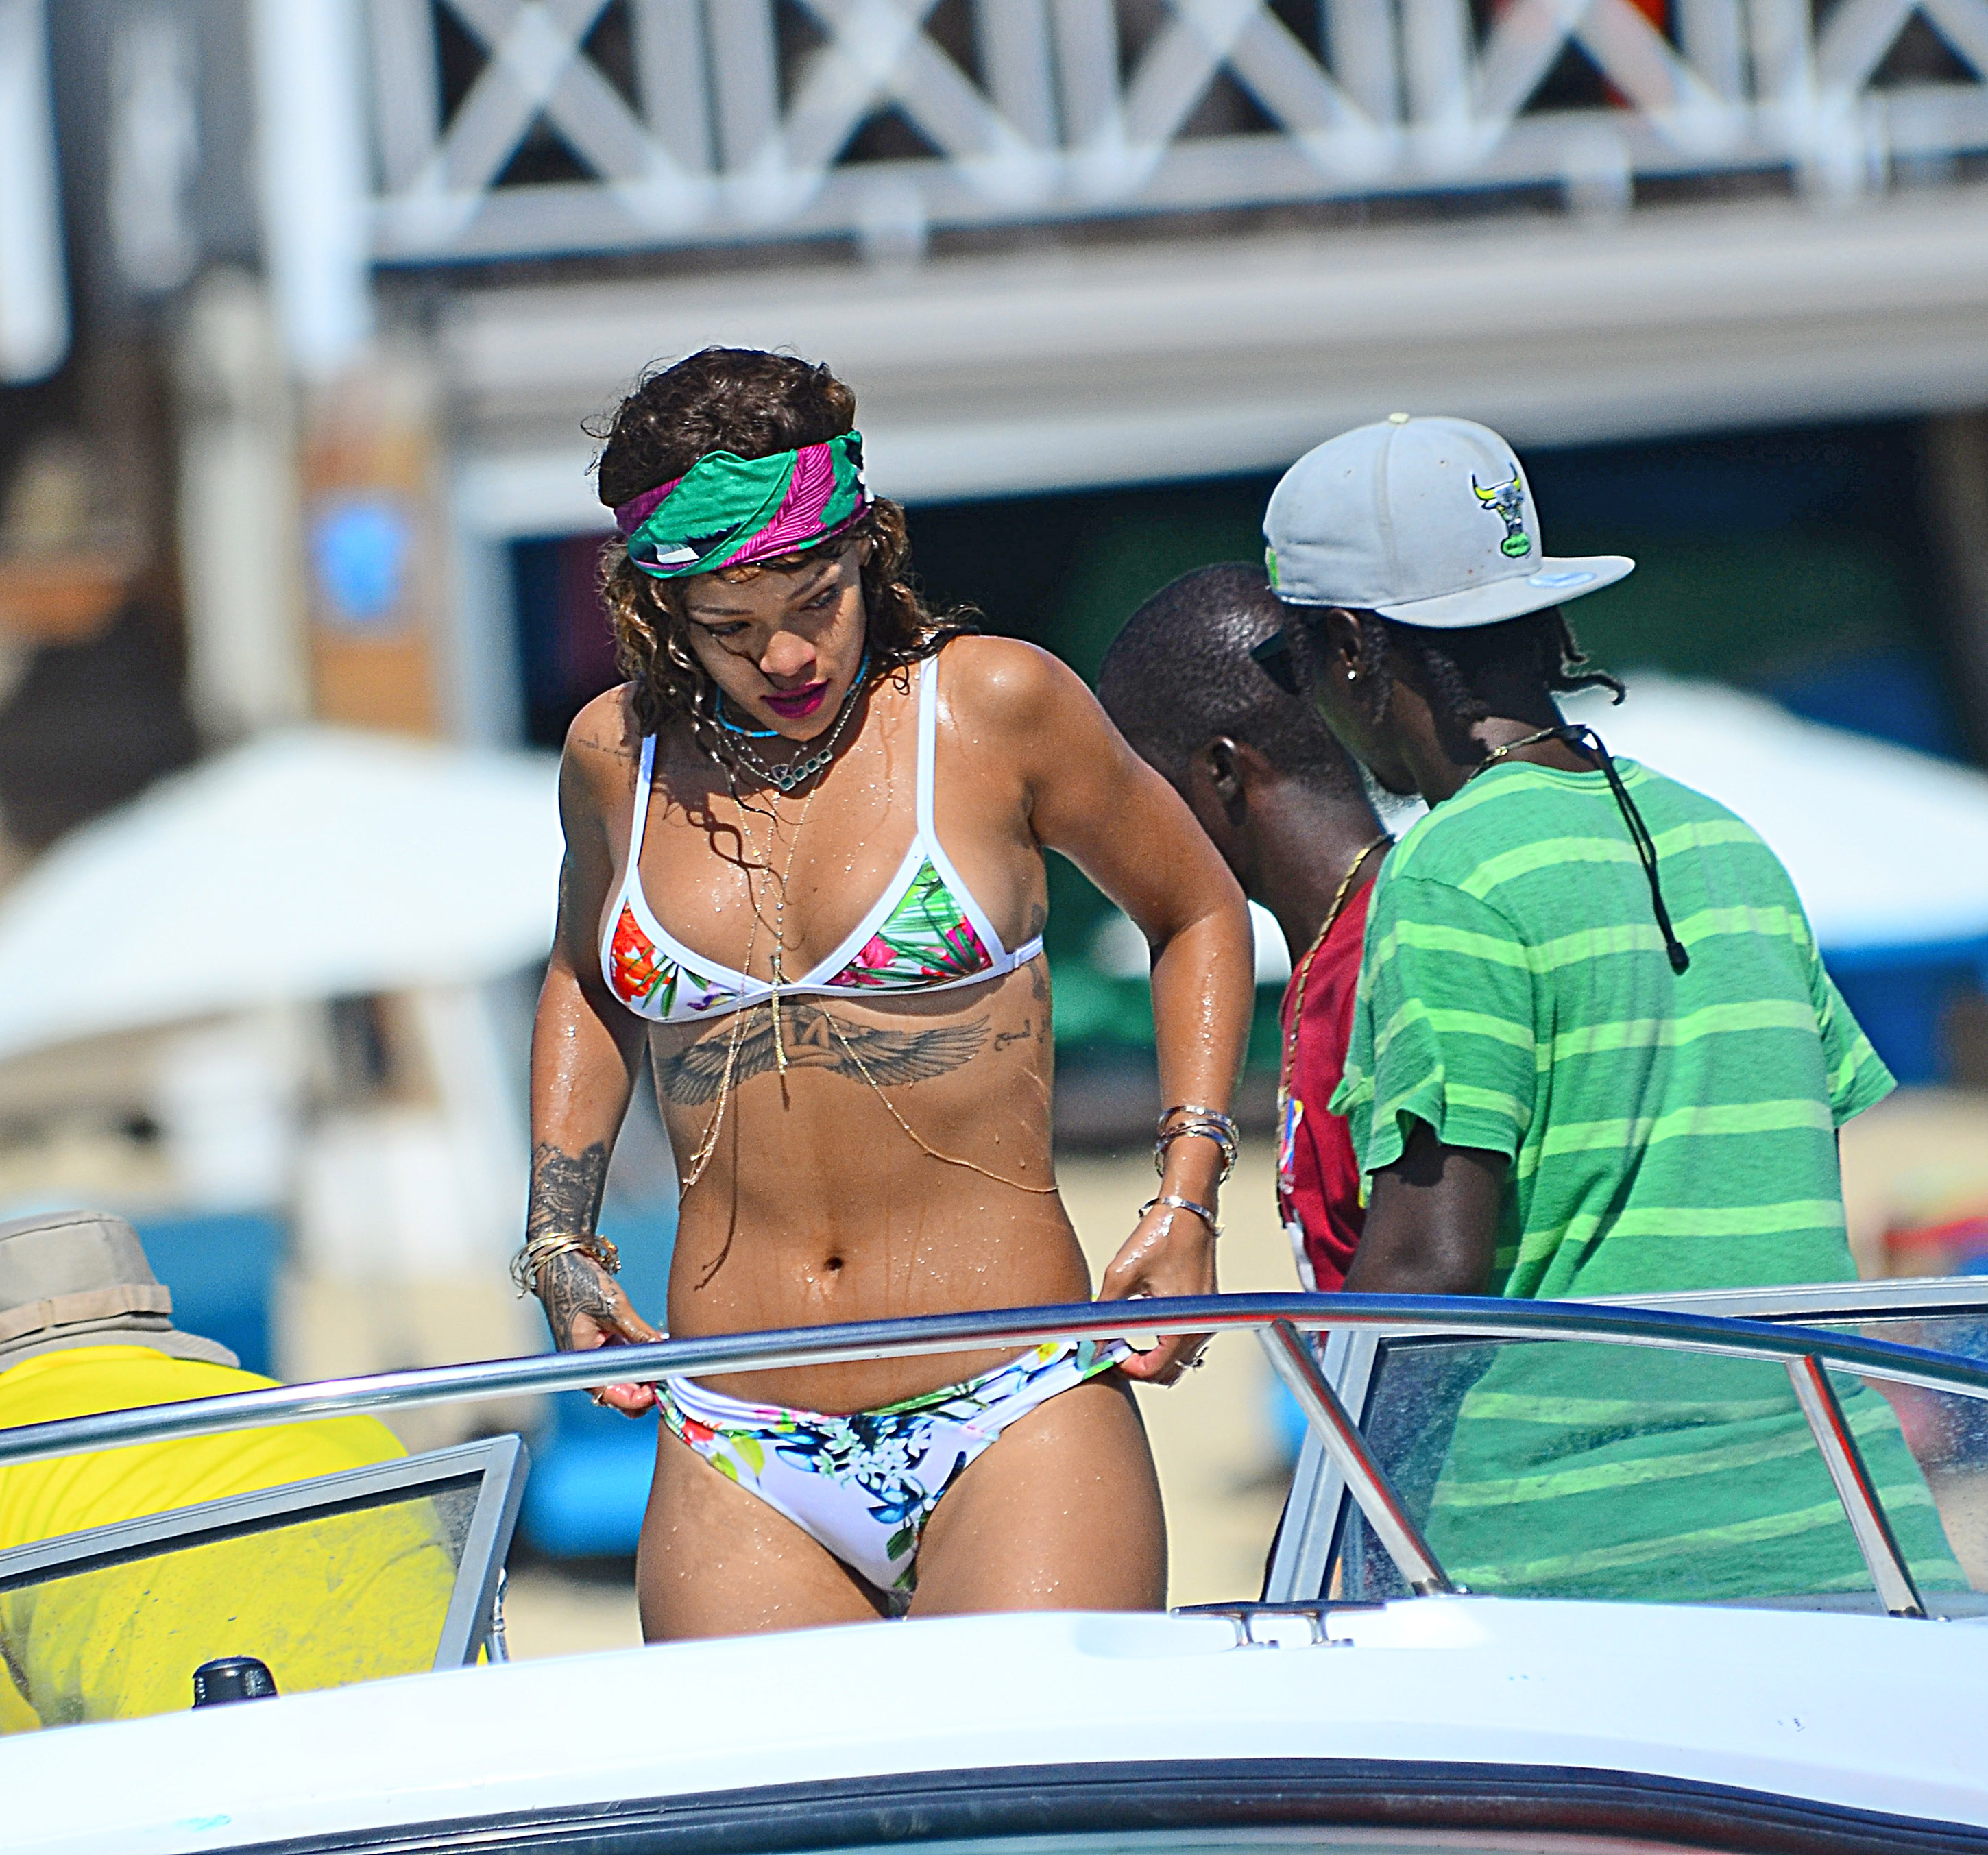 Rihanna New Bikini Photos